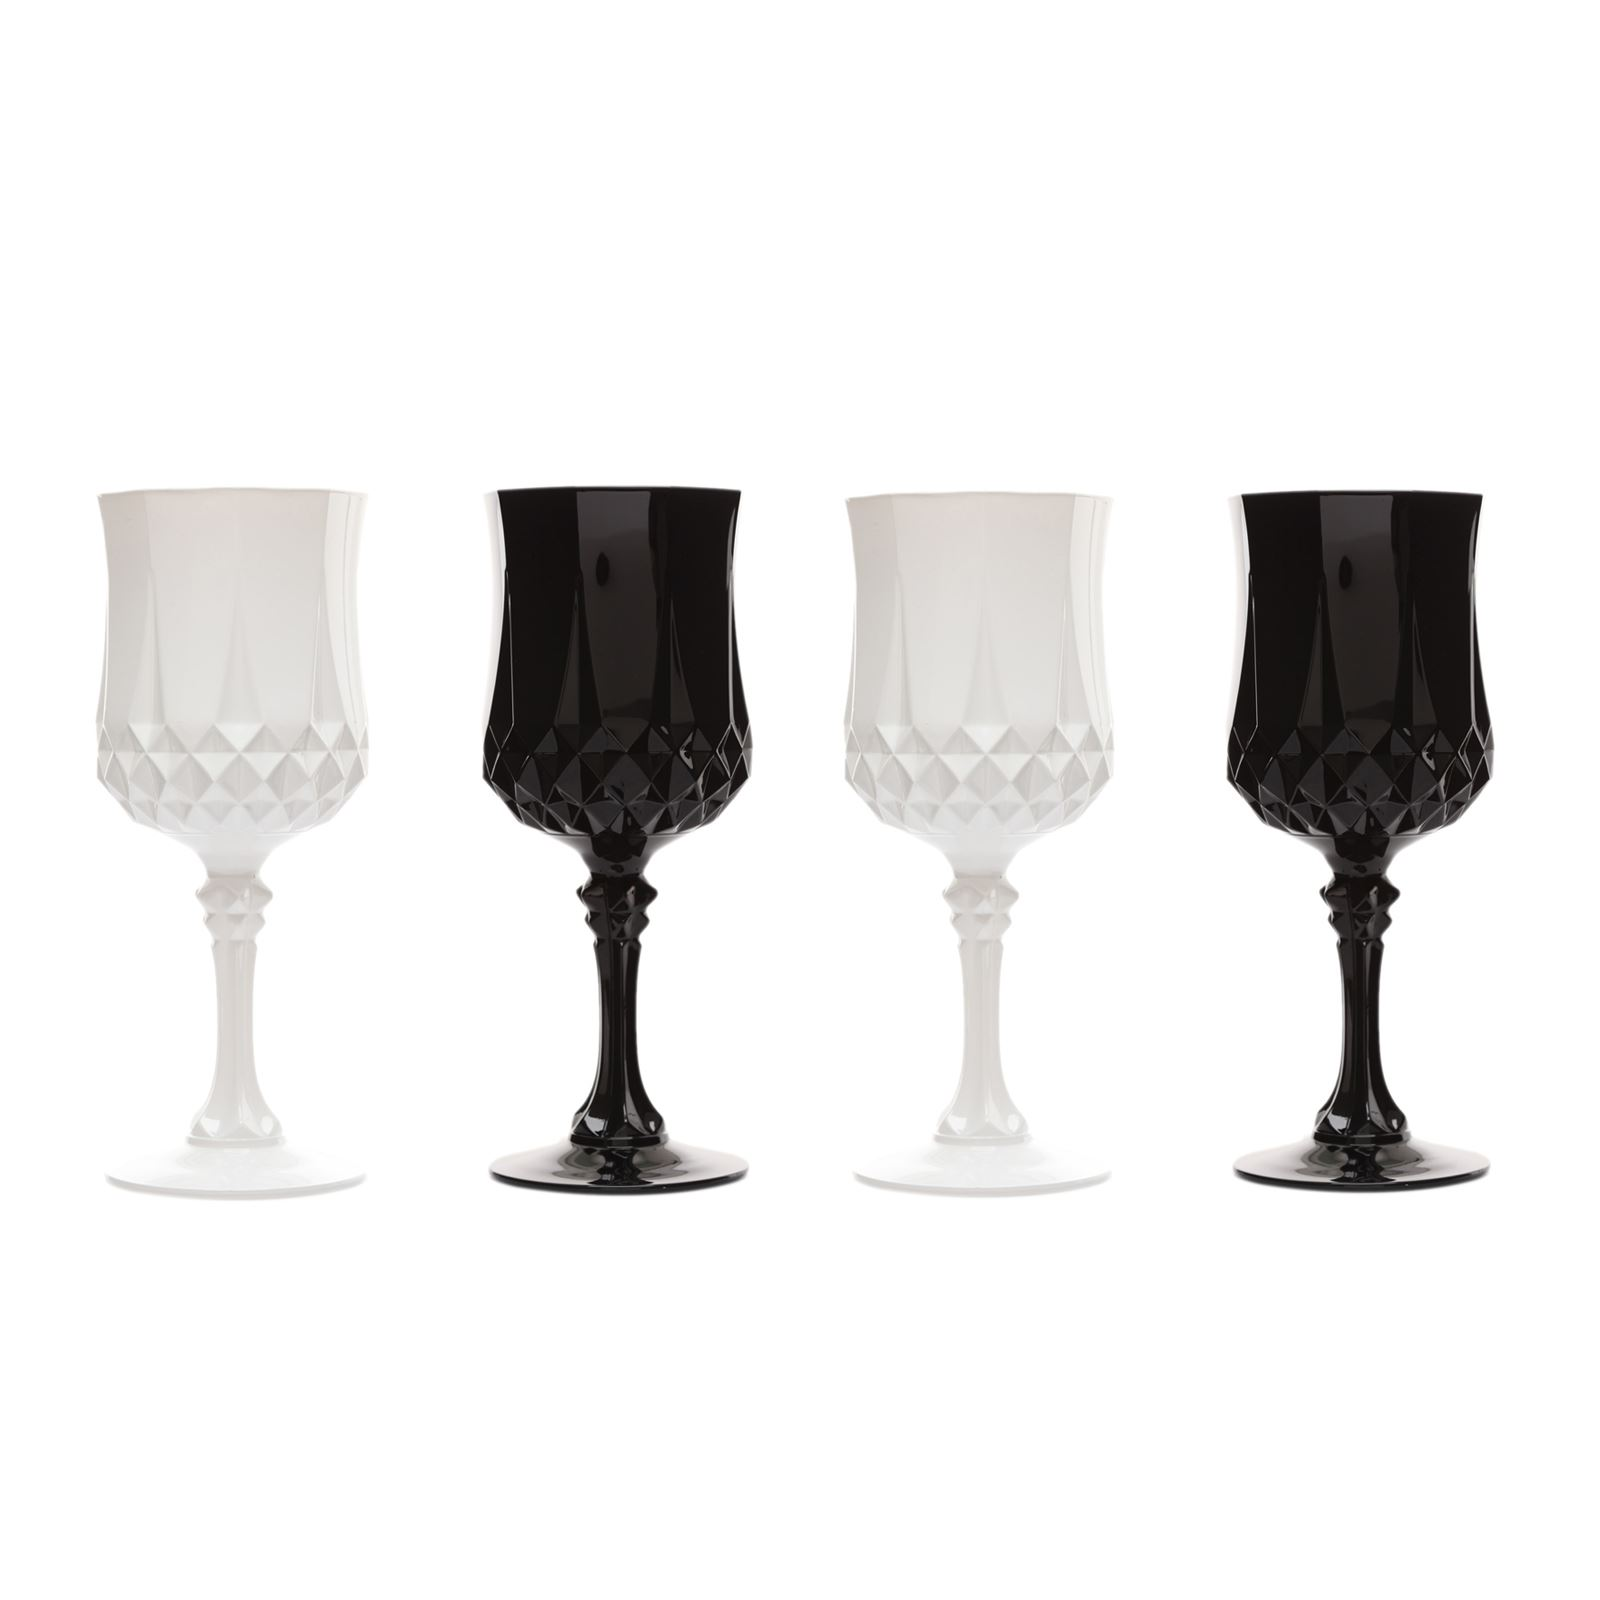 cristal d 39 arques longchamp cristal coffret de 4 verres. Black Bedroom Furniture Sets. Home Design Ideas